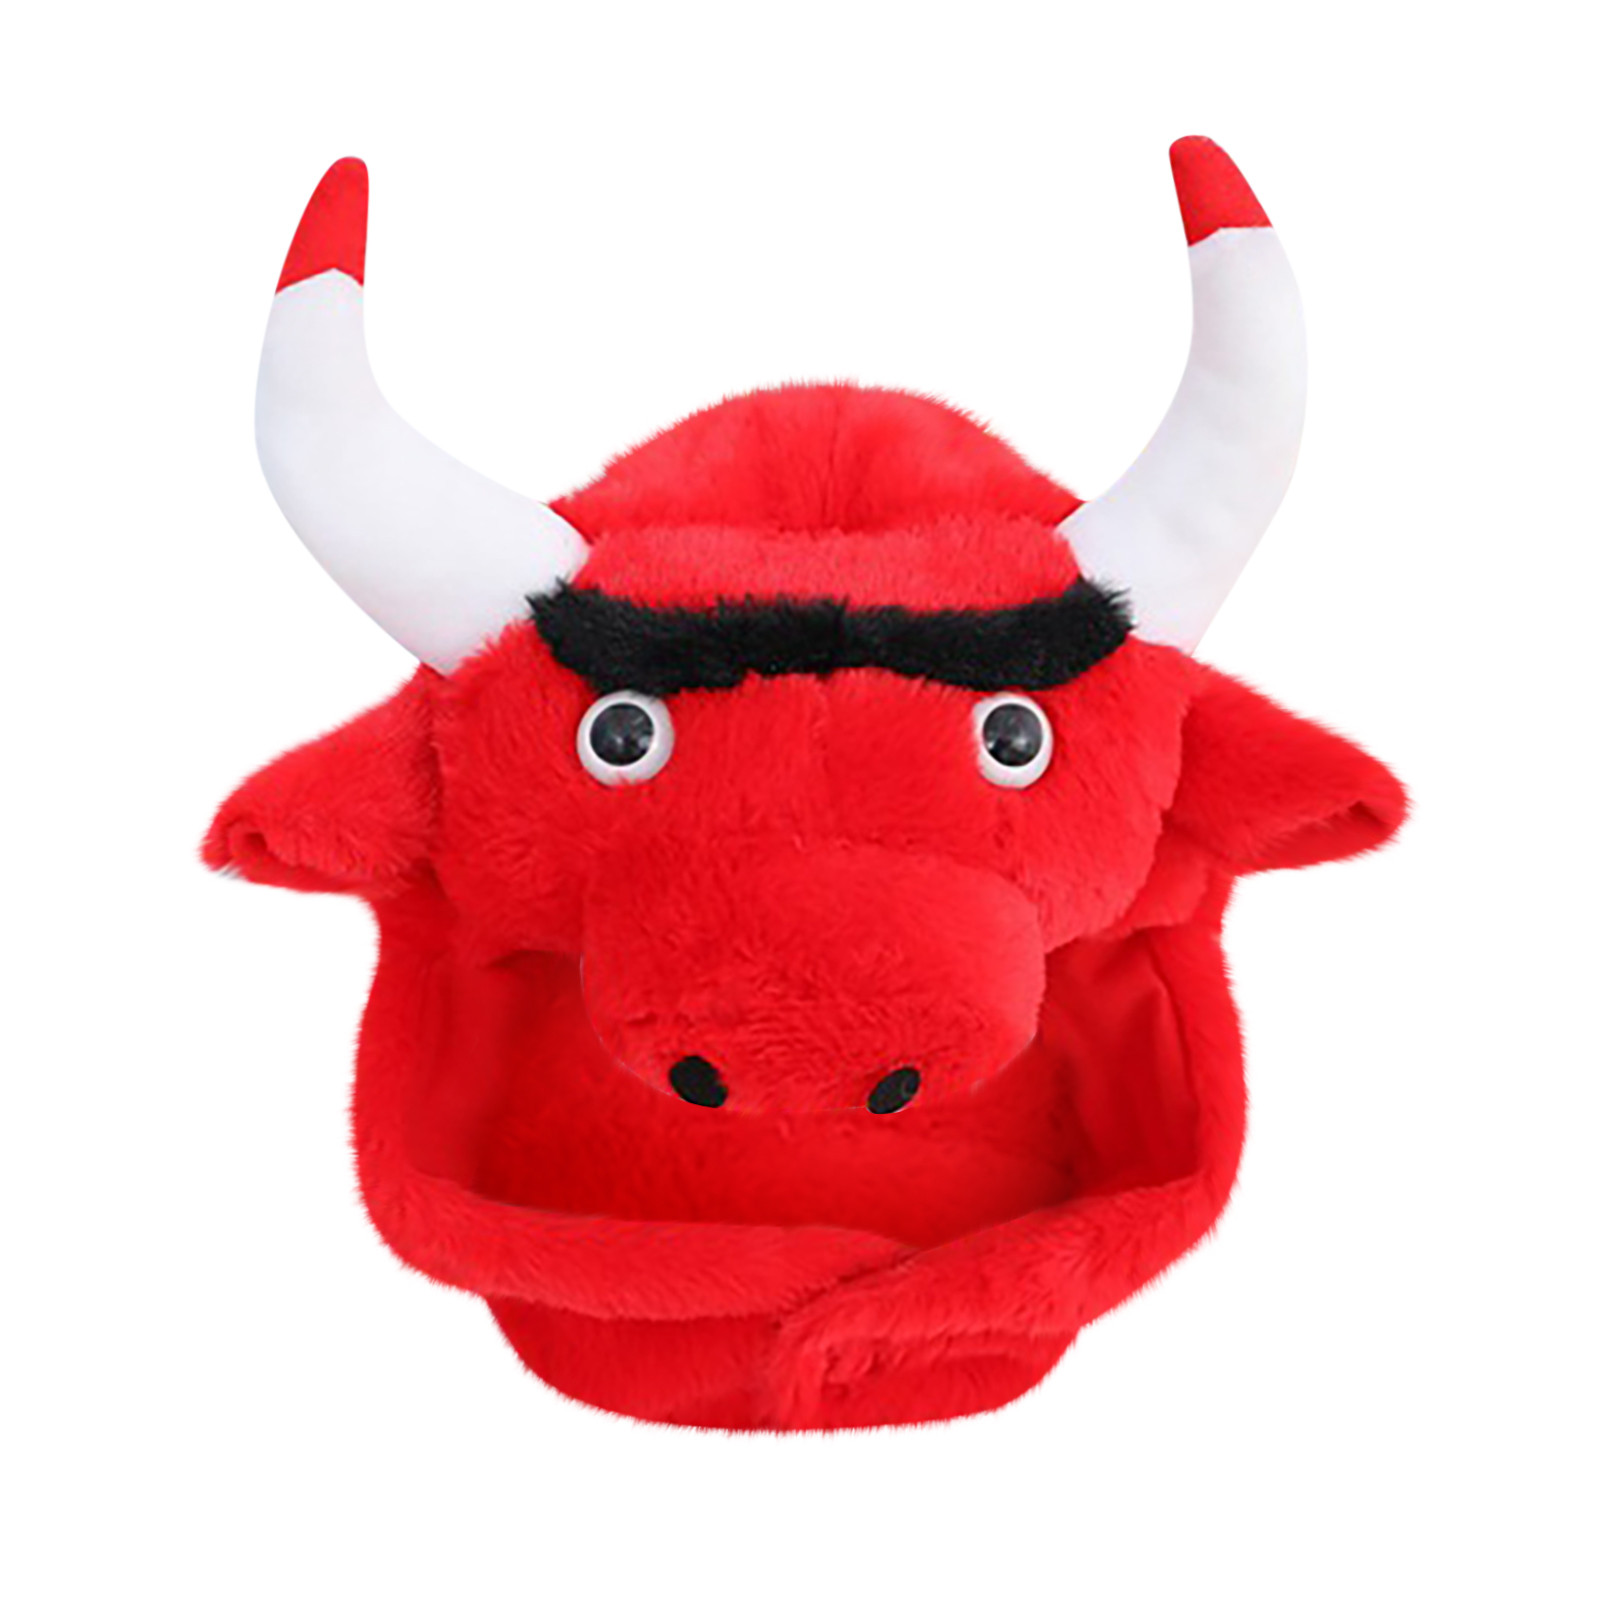 Novelty Red Cattle Bullfight Hat Adult Cartoon Funny Adorable Plush Bullfight Hat Cosplay Costume Dress Up Hat Headgear Hats